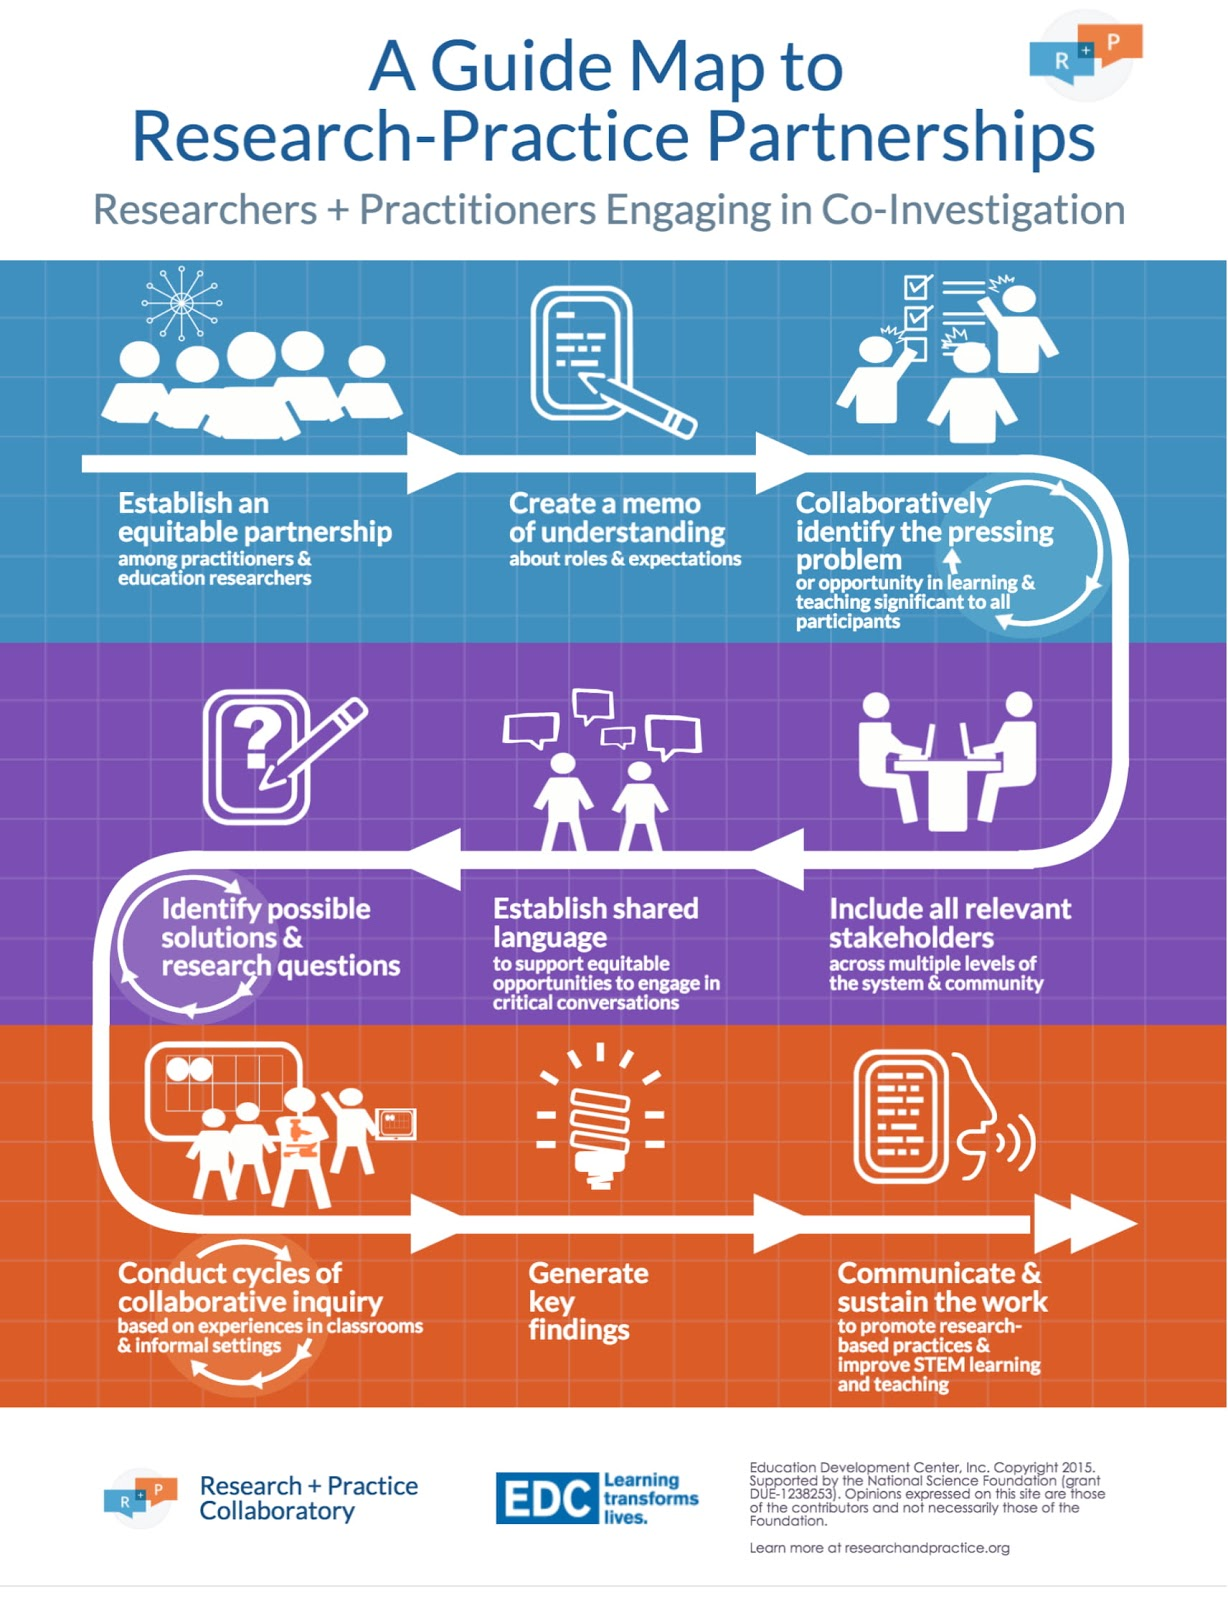 A Guide to Research Practitioner Partnerships